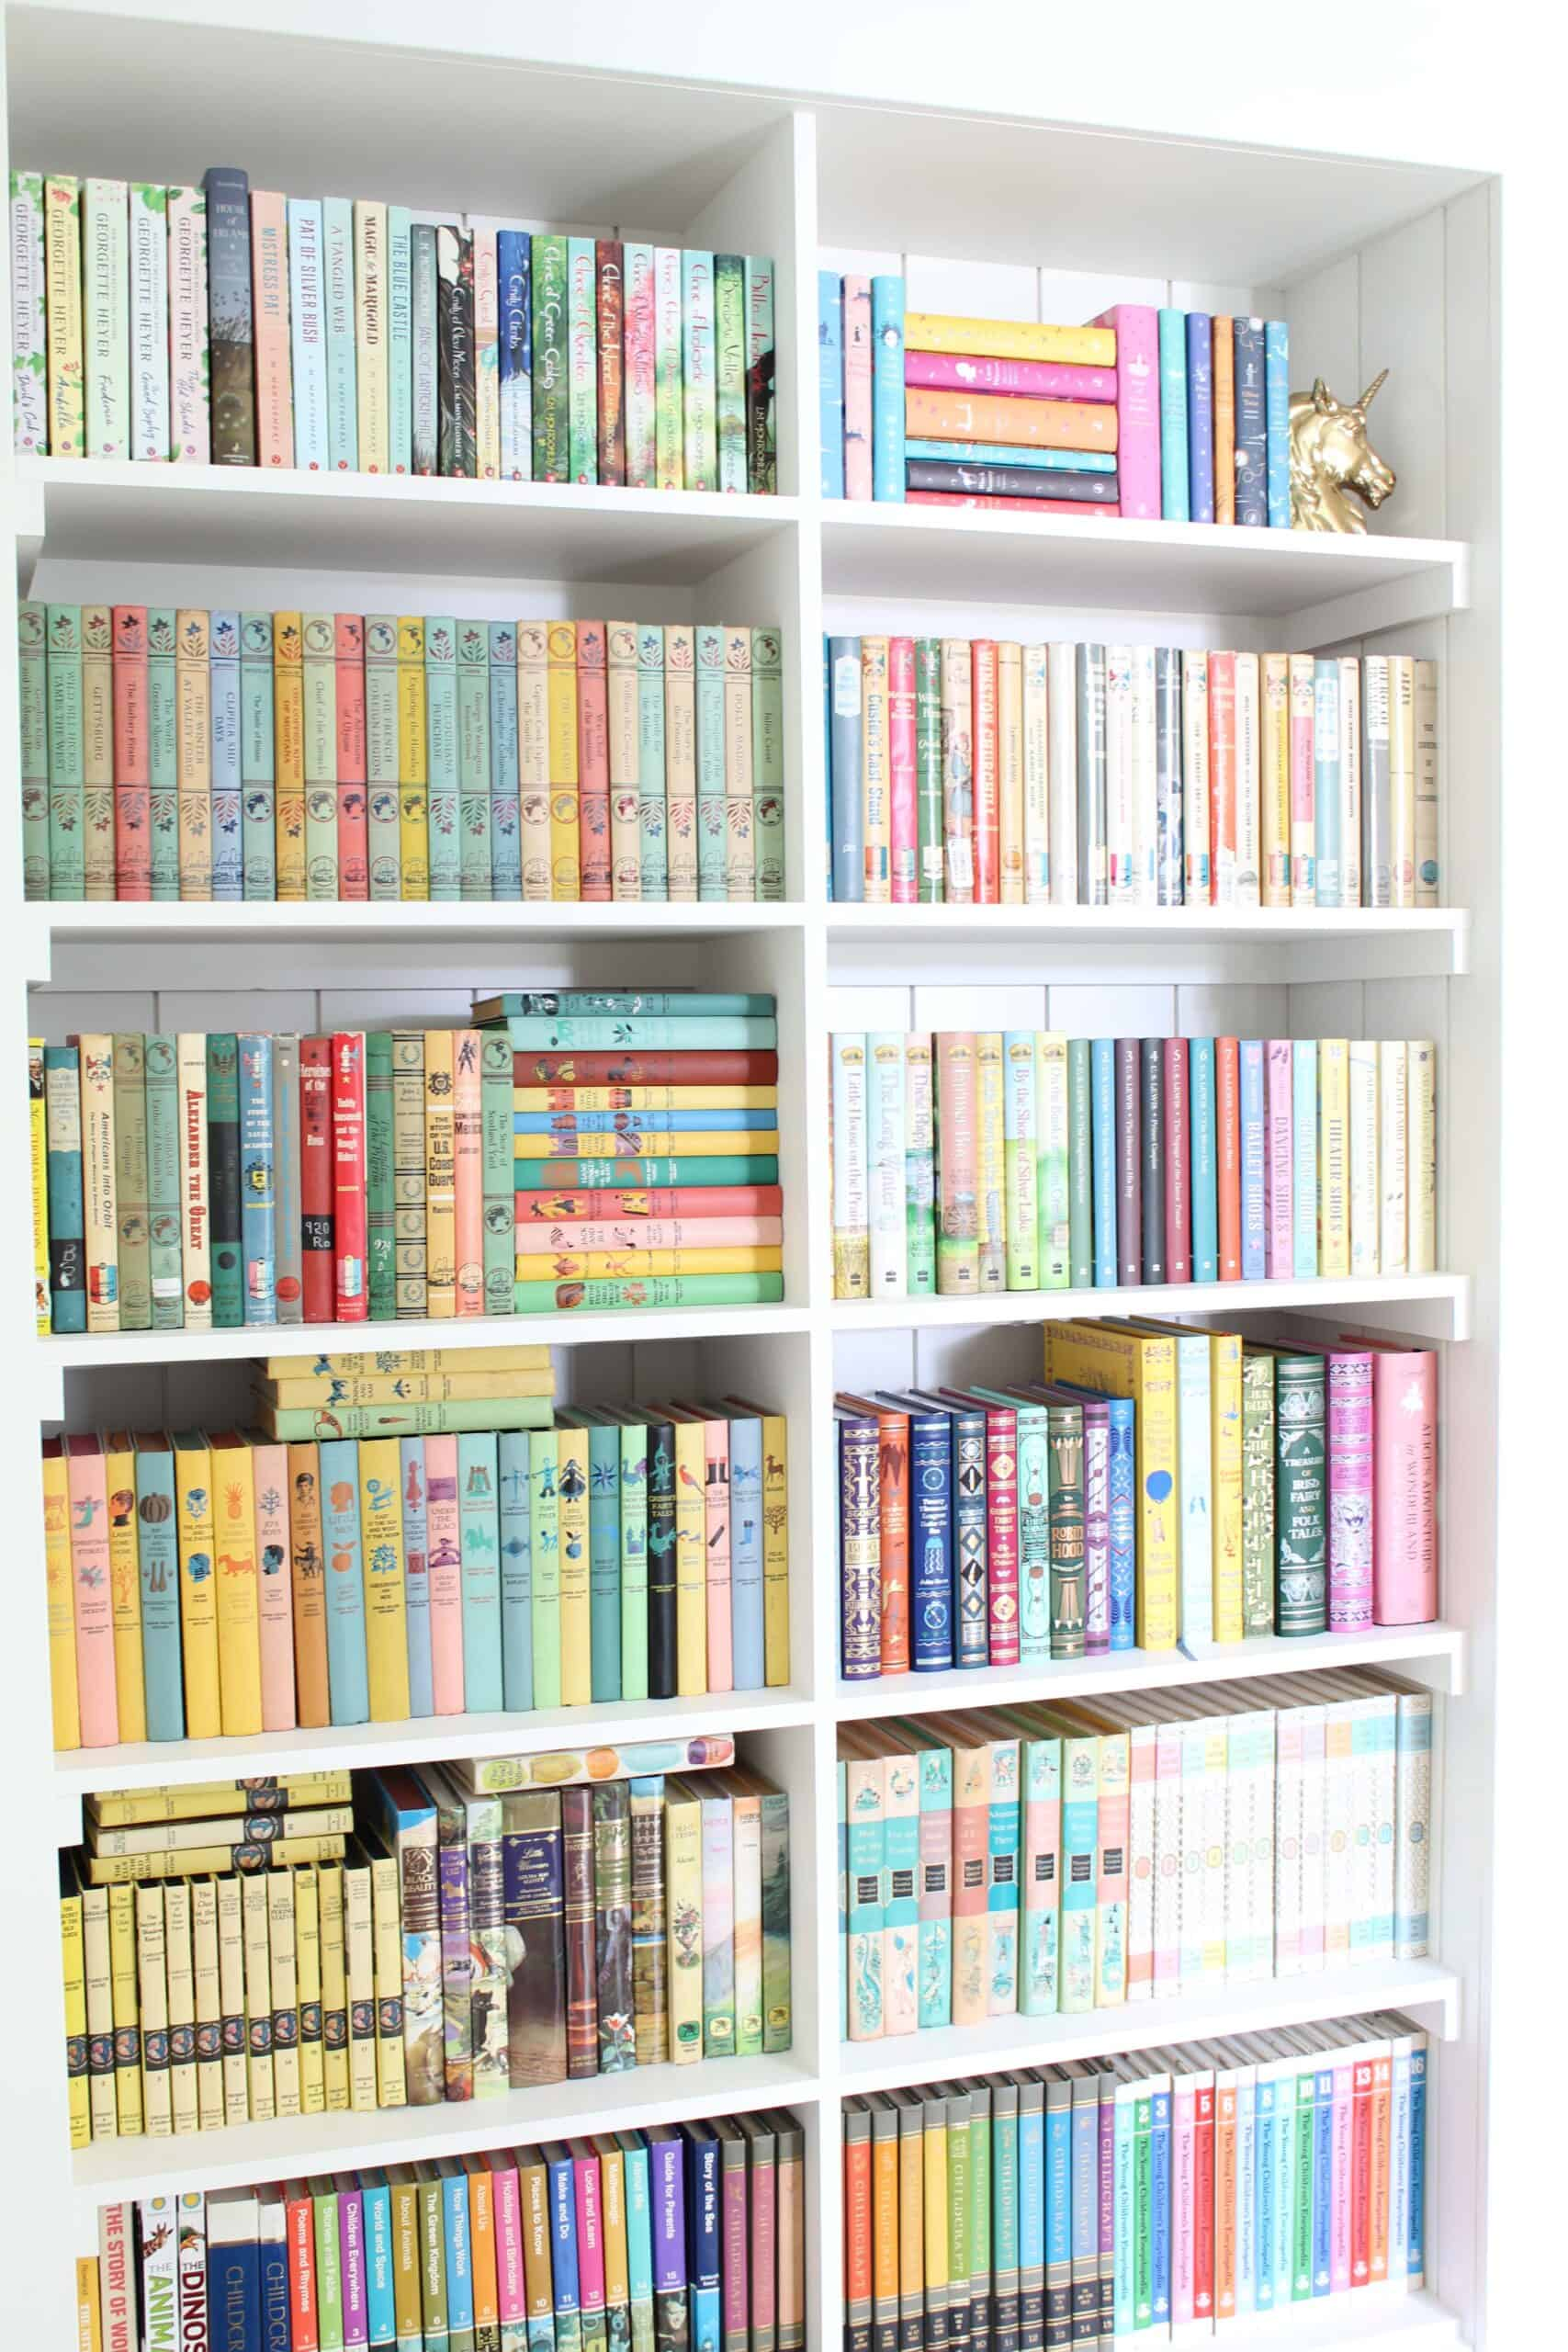 a closet converted into a bookshelf with colorful books and shiplap